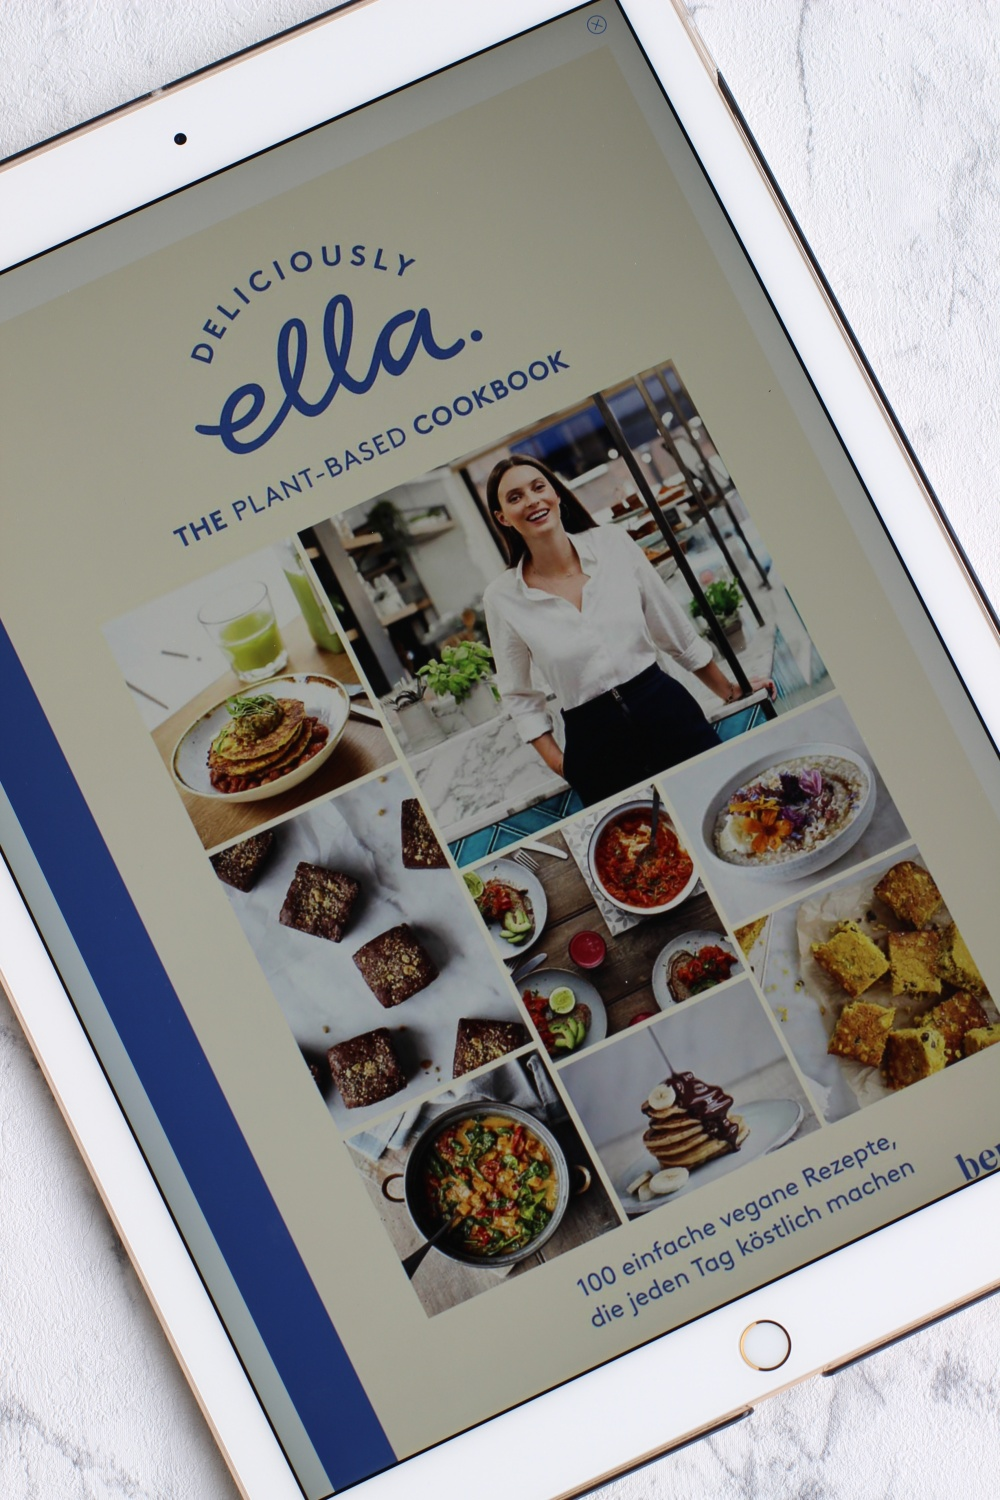 Deliciously Ella The plant-based cook book